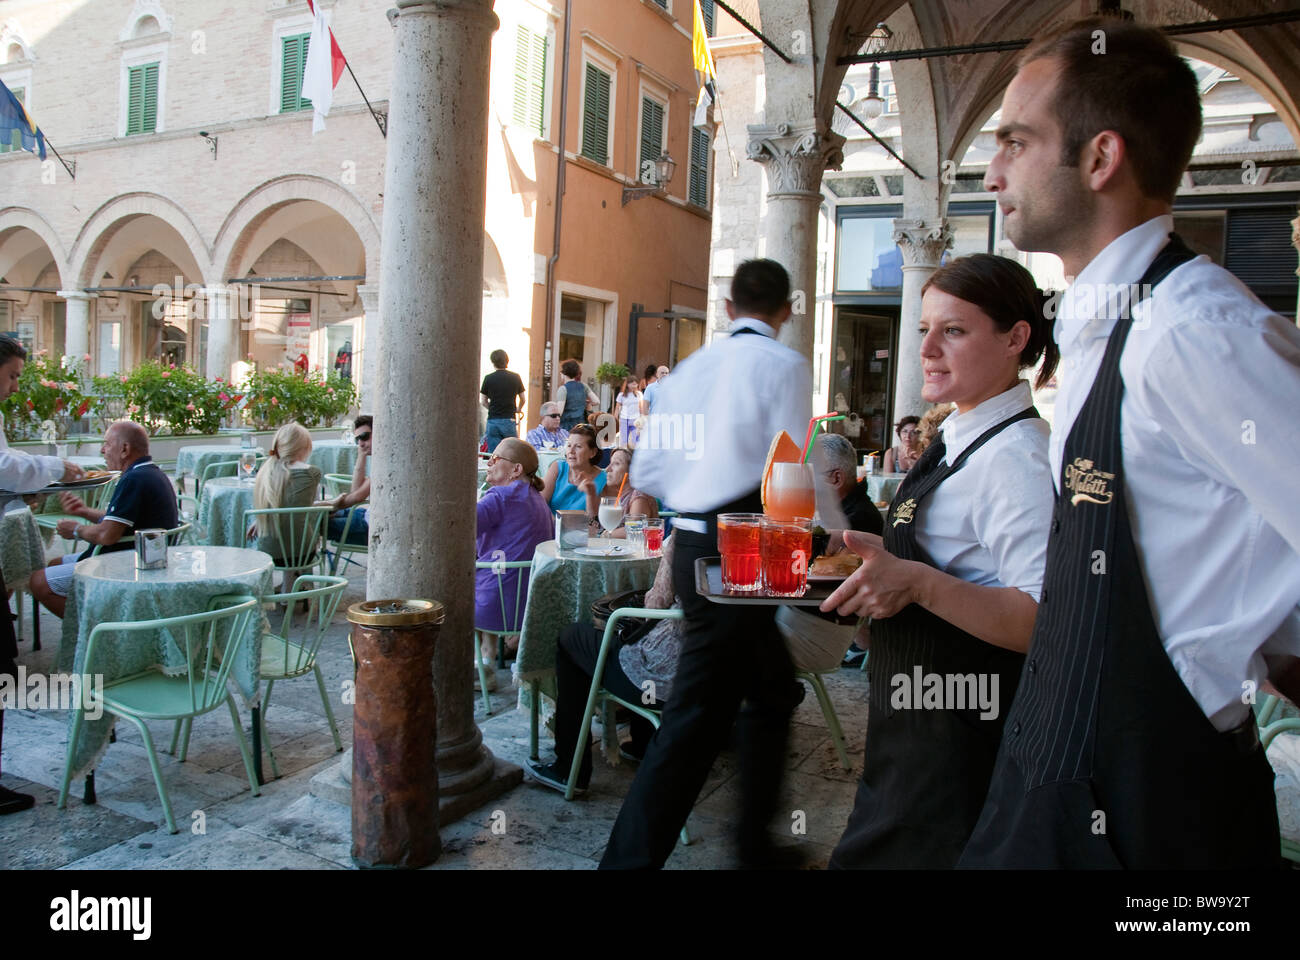 Waiters at Caffe Meletti in Piazza del Popolo, Ascoli Piceno serving drinks - Stock Image